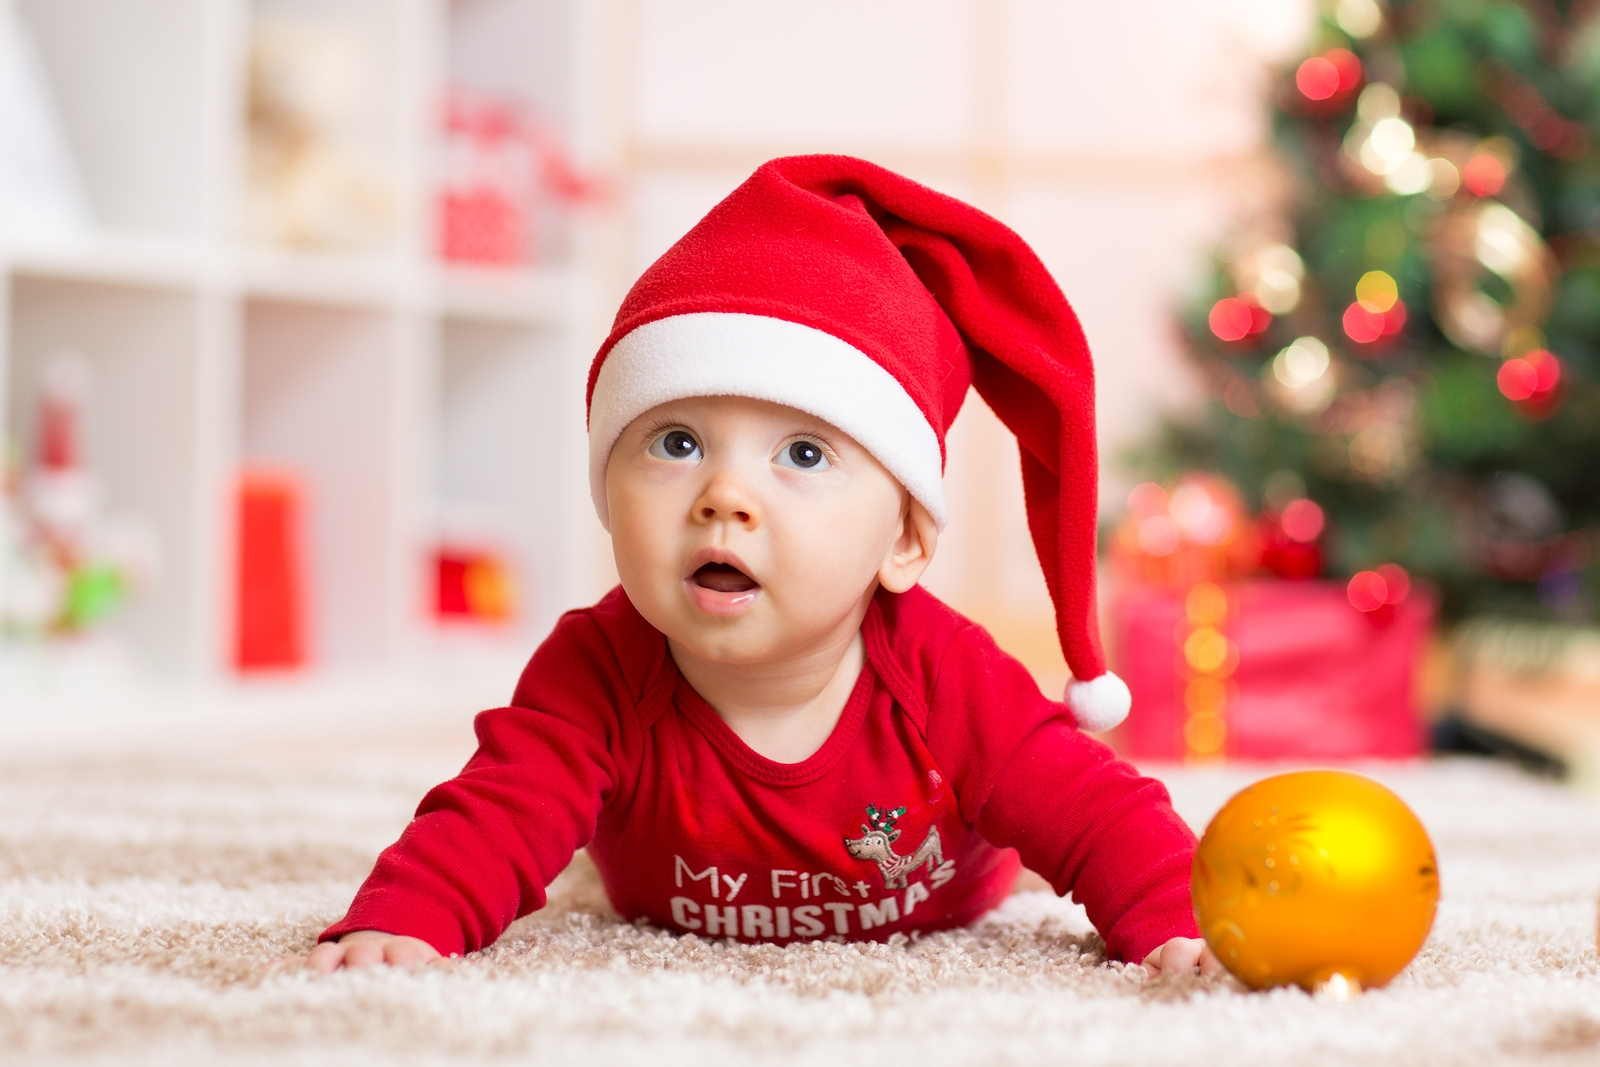 Before You Deck the Halls, Hire a Carpet Cleaning Service